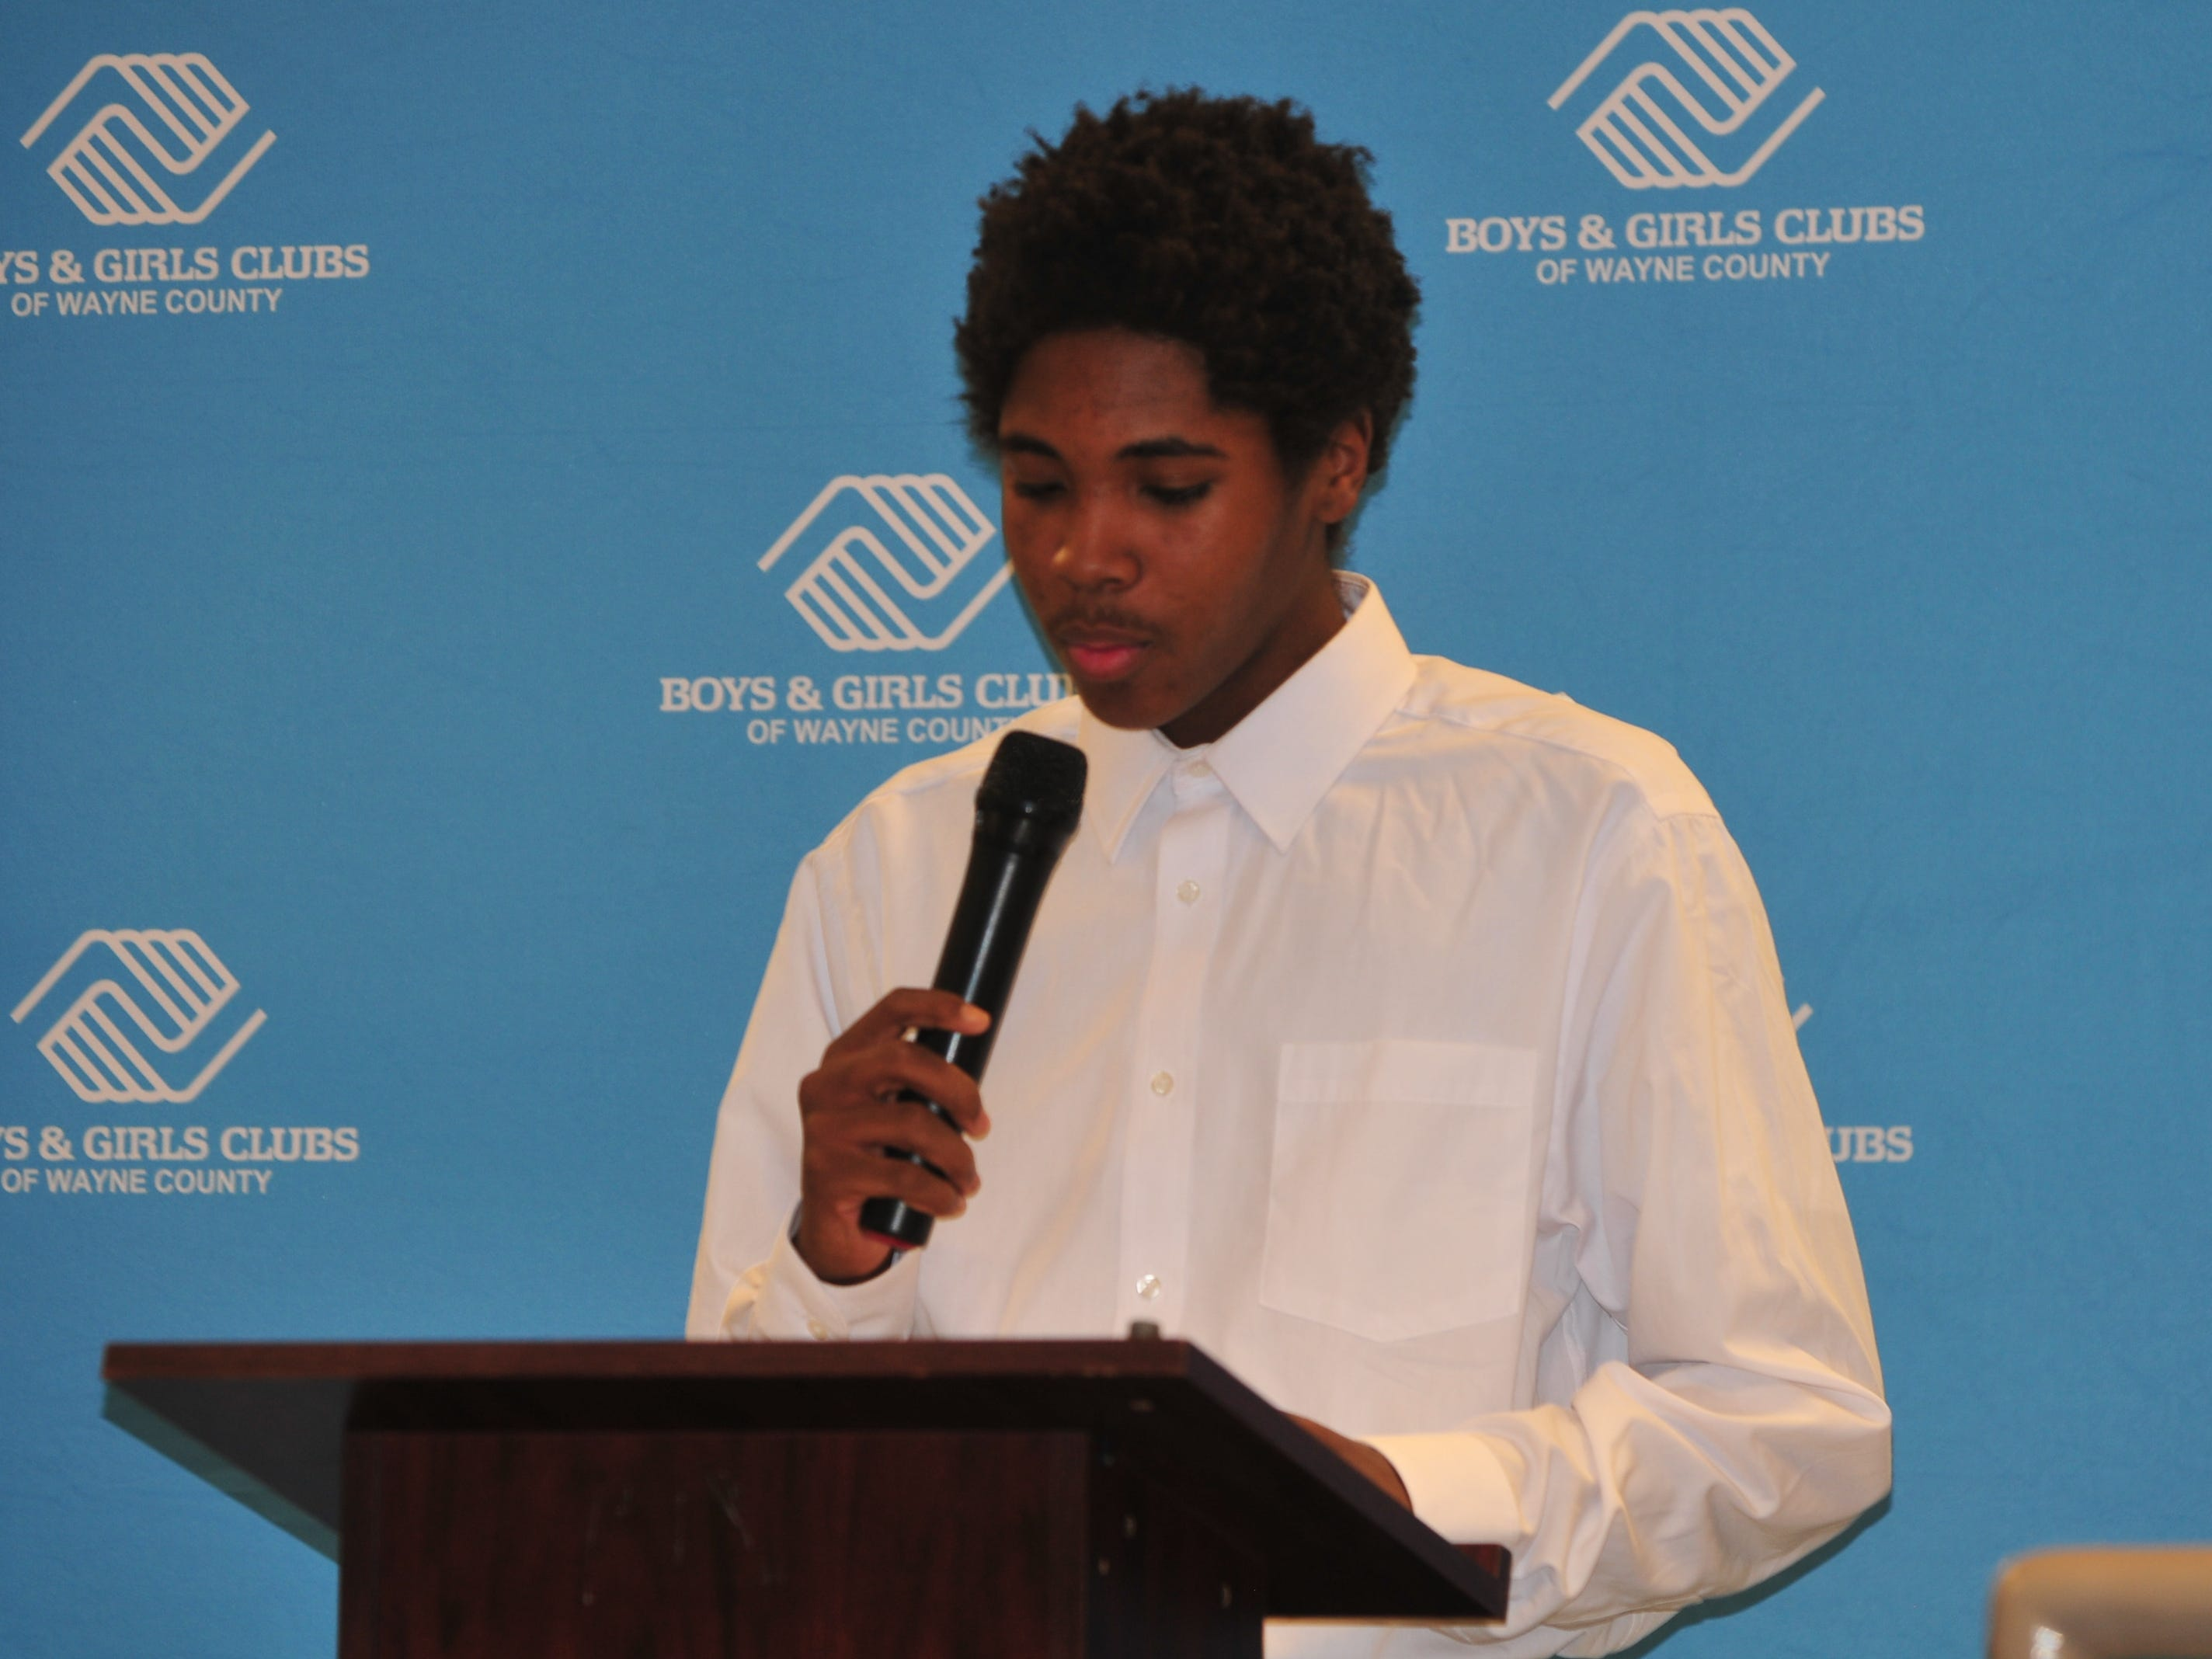 Isayah Wilks presents hisr essay Monday during the Boys and Girls Clubs of Wayne County Youth of the Year competition at the Jeffers Unit.